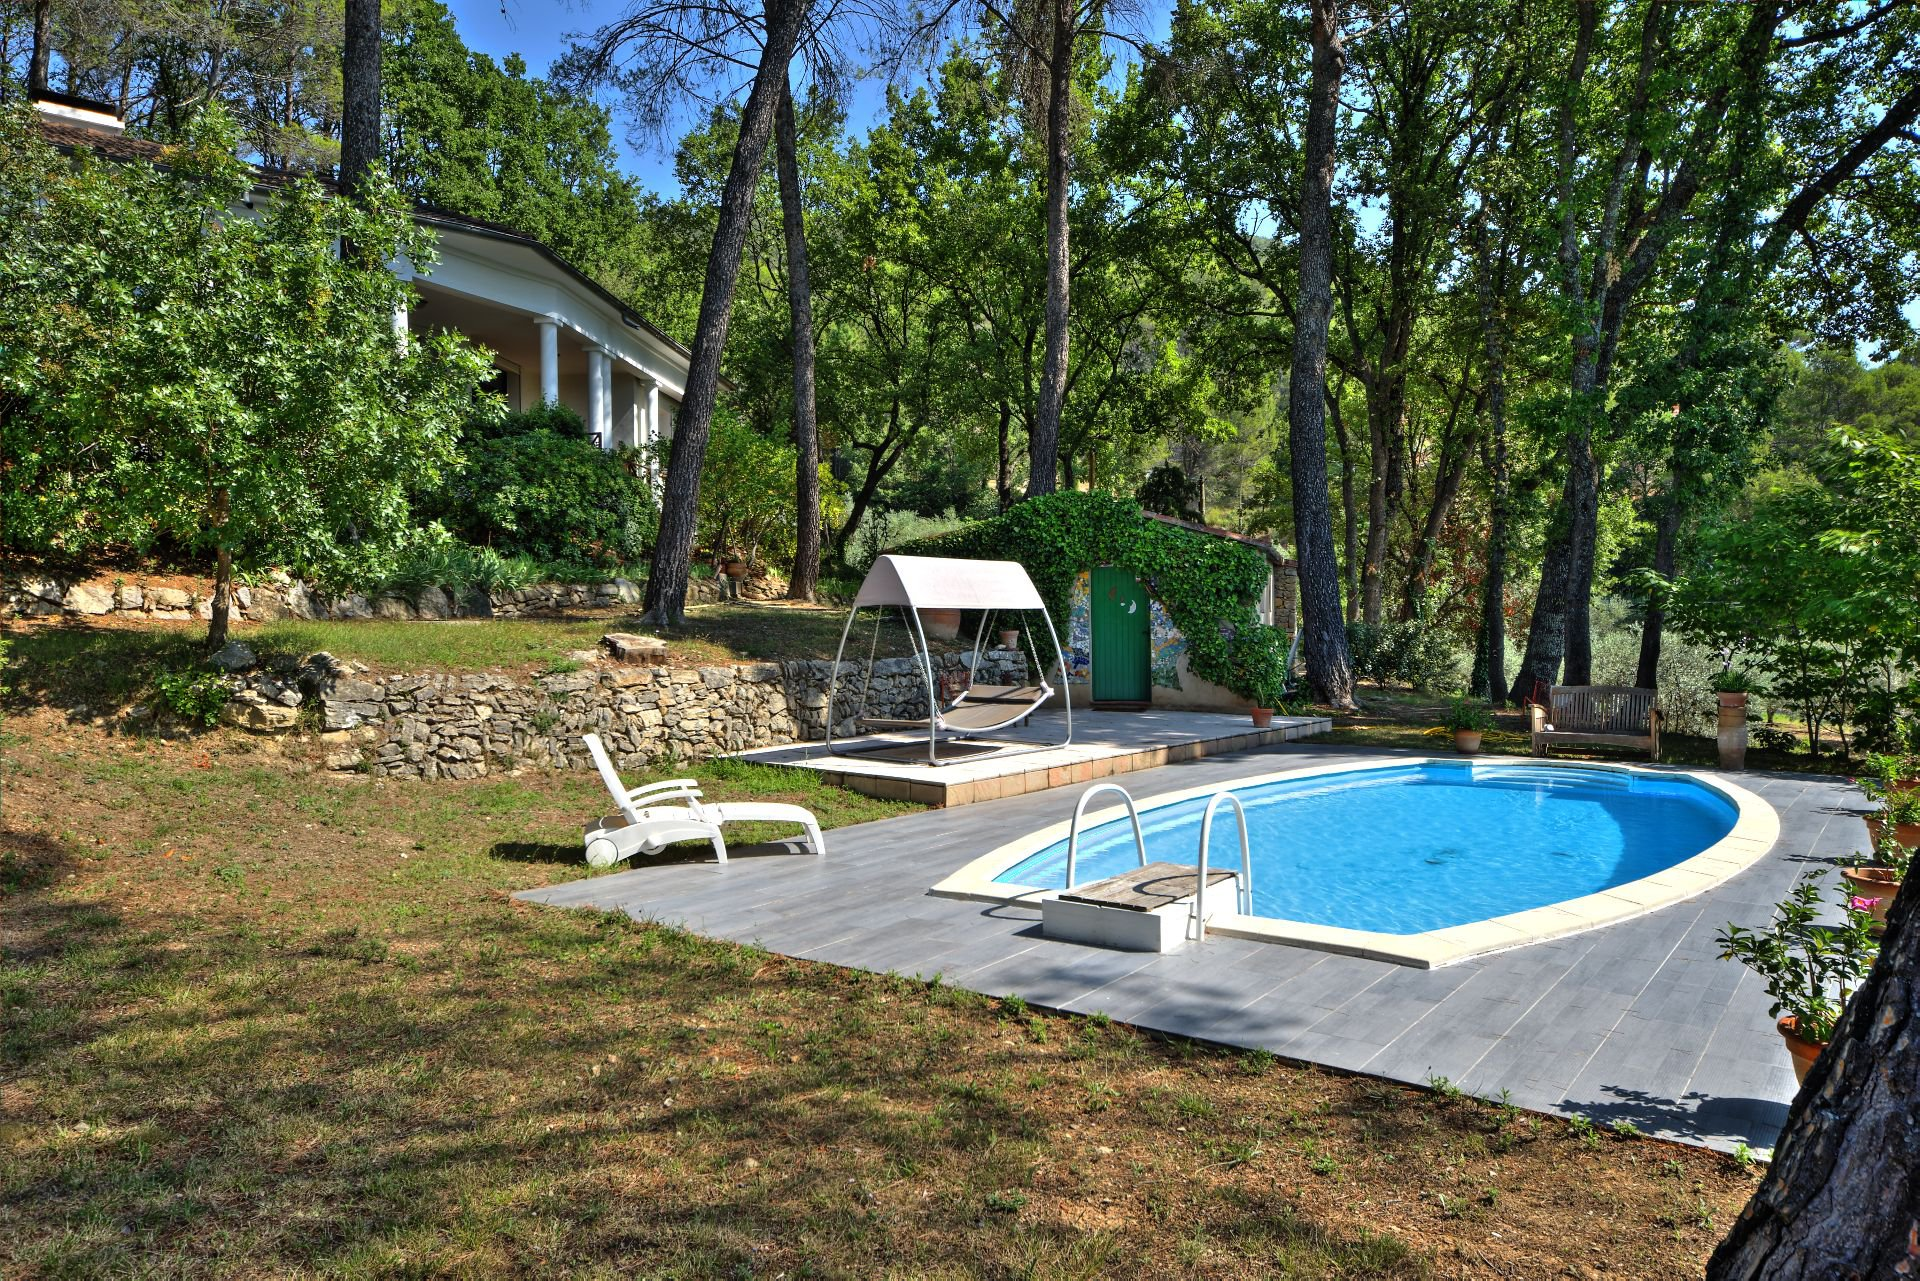 Architect house with pool - a paradise in Provence - High quality benefits